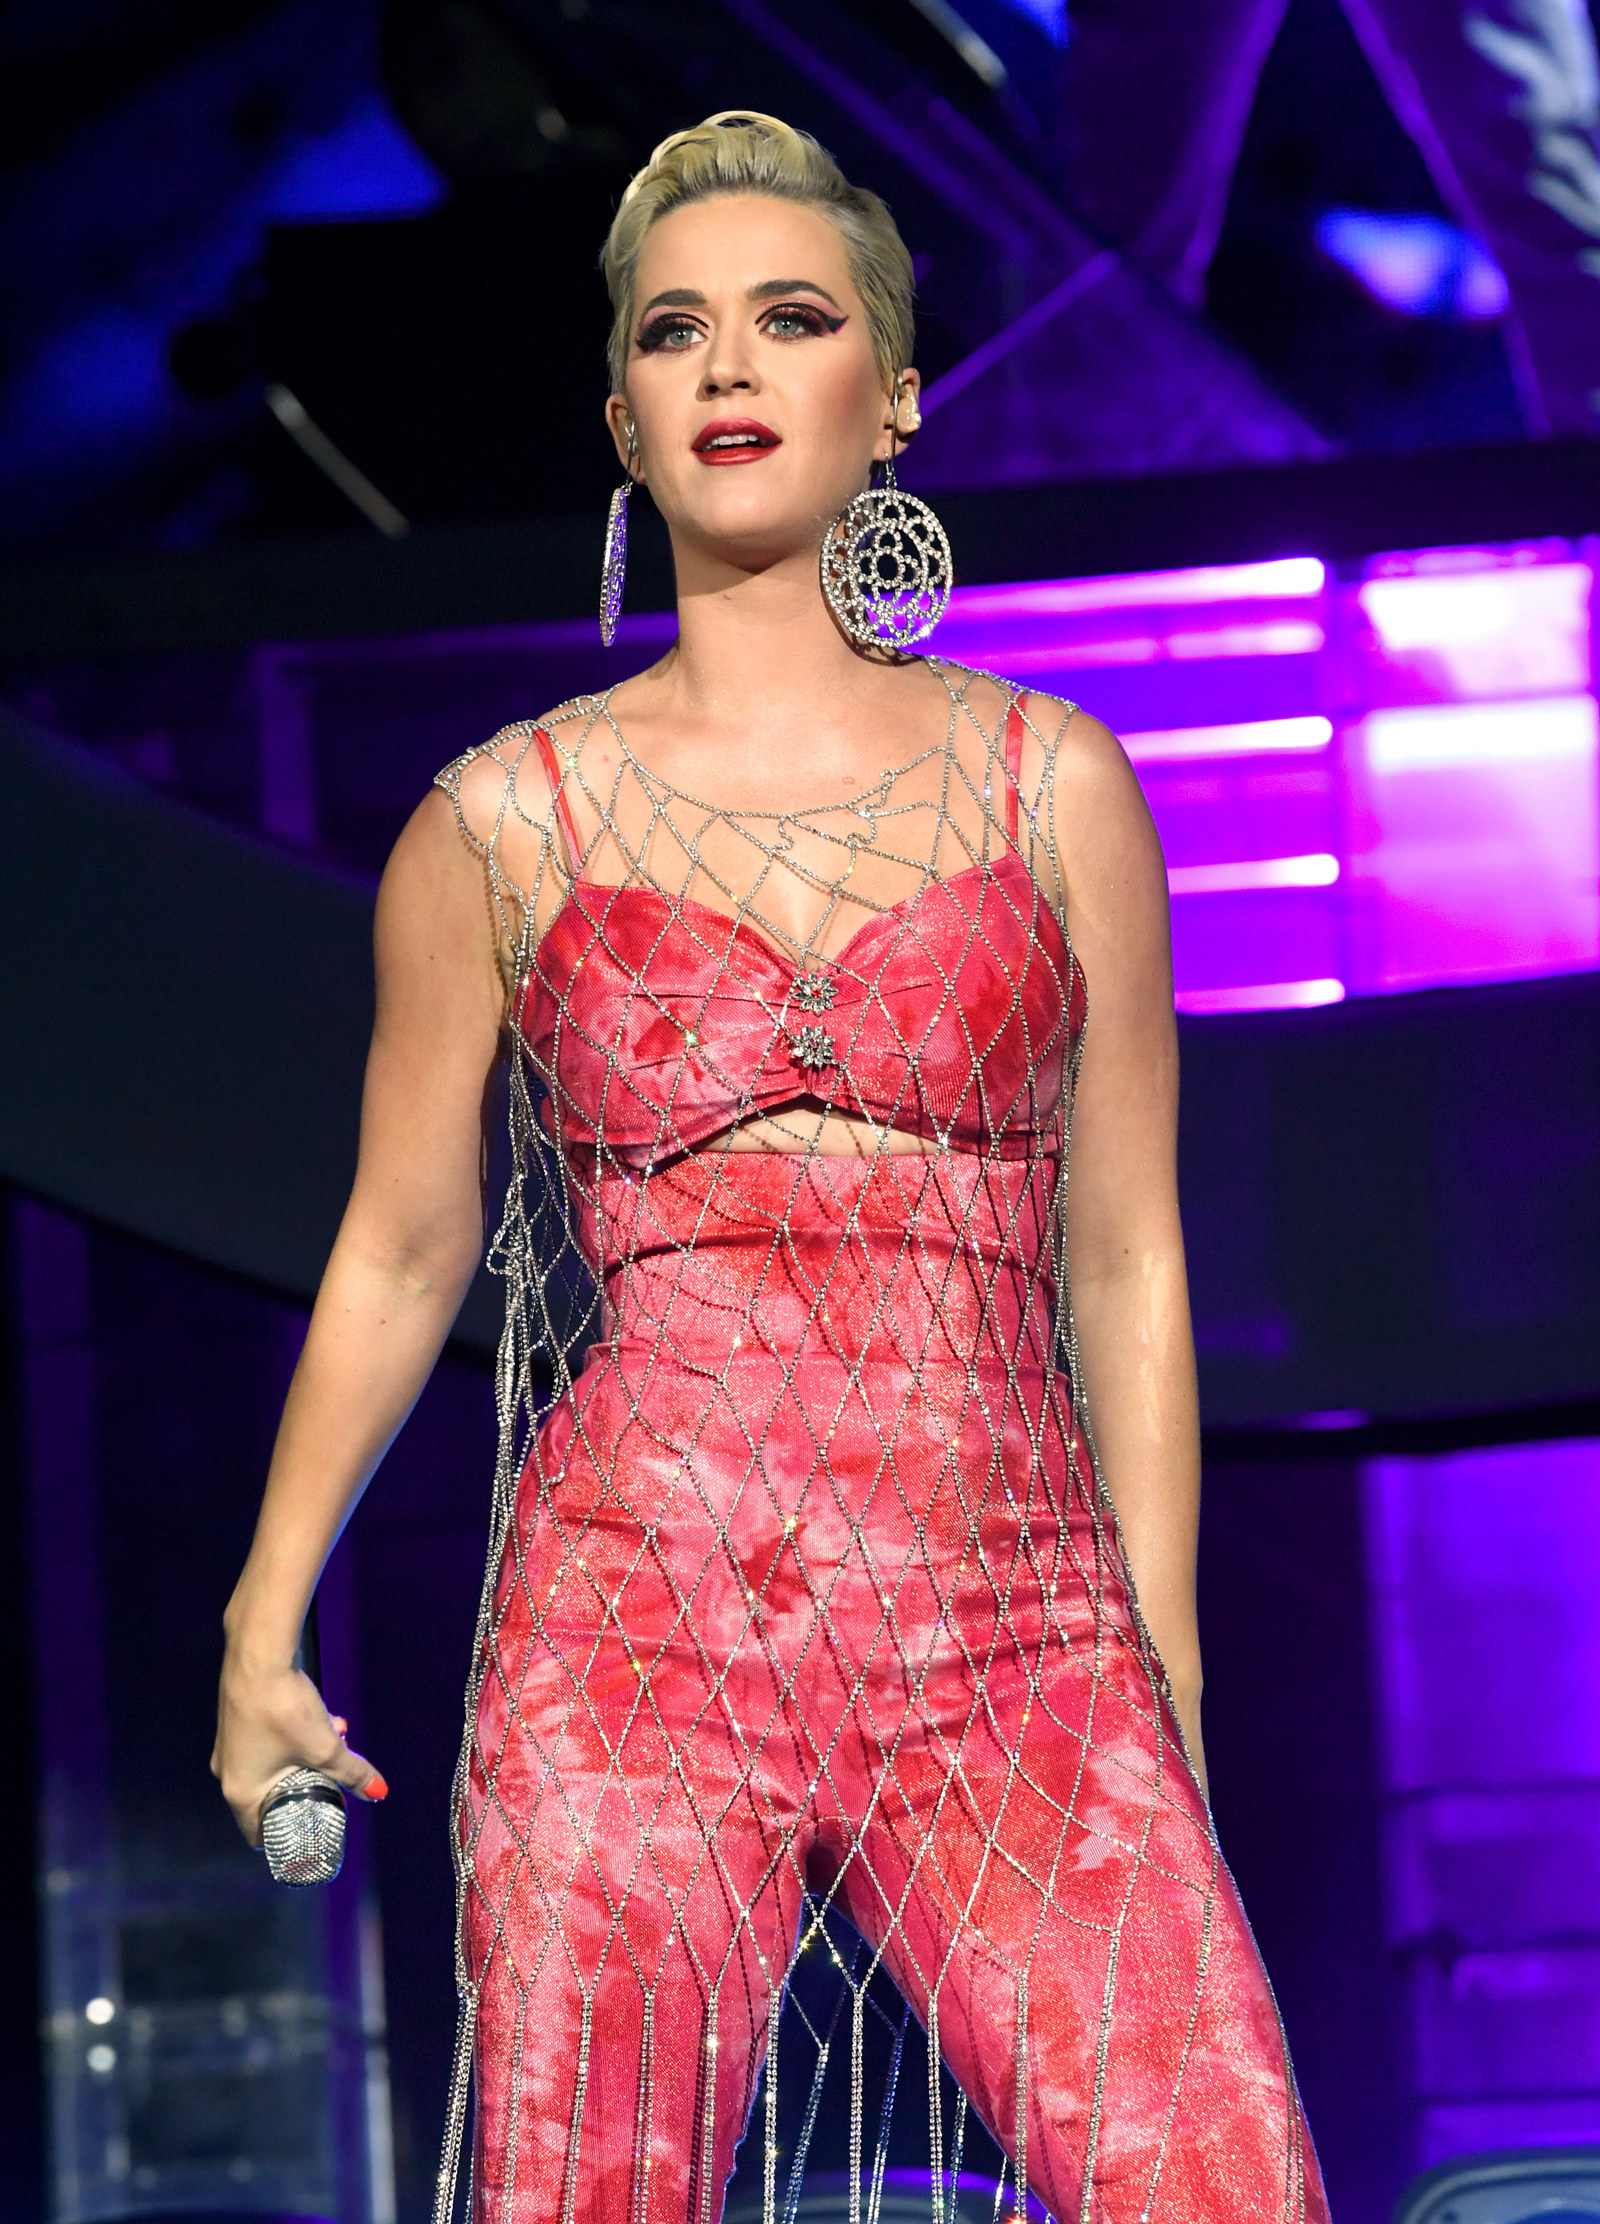 Katy Perry's And Taylor Swift's Flops Are Bad News For Big Pop